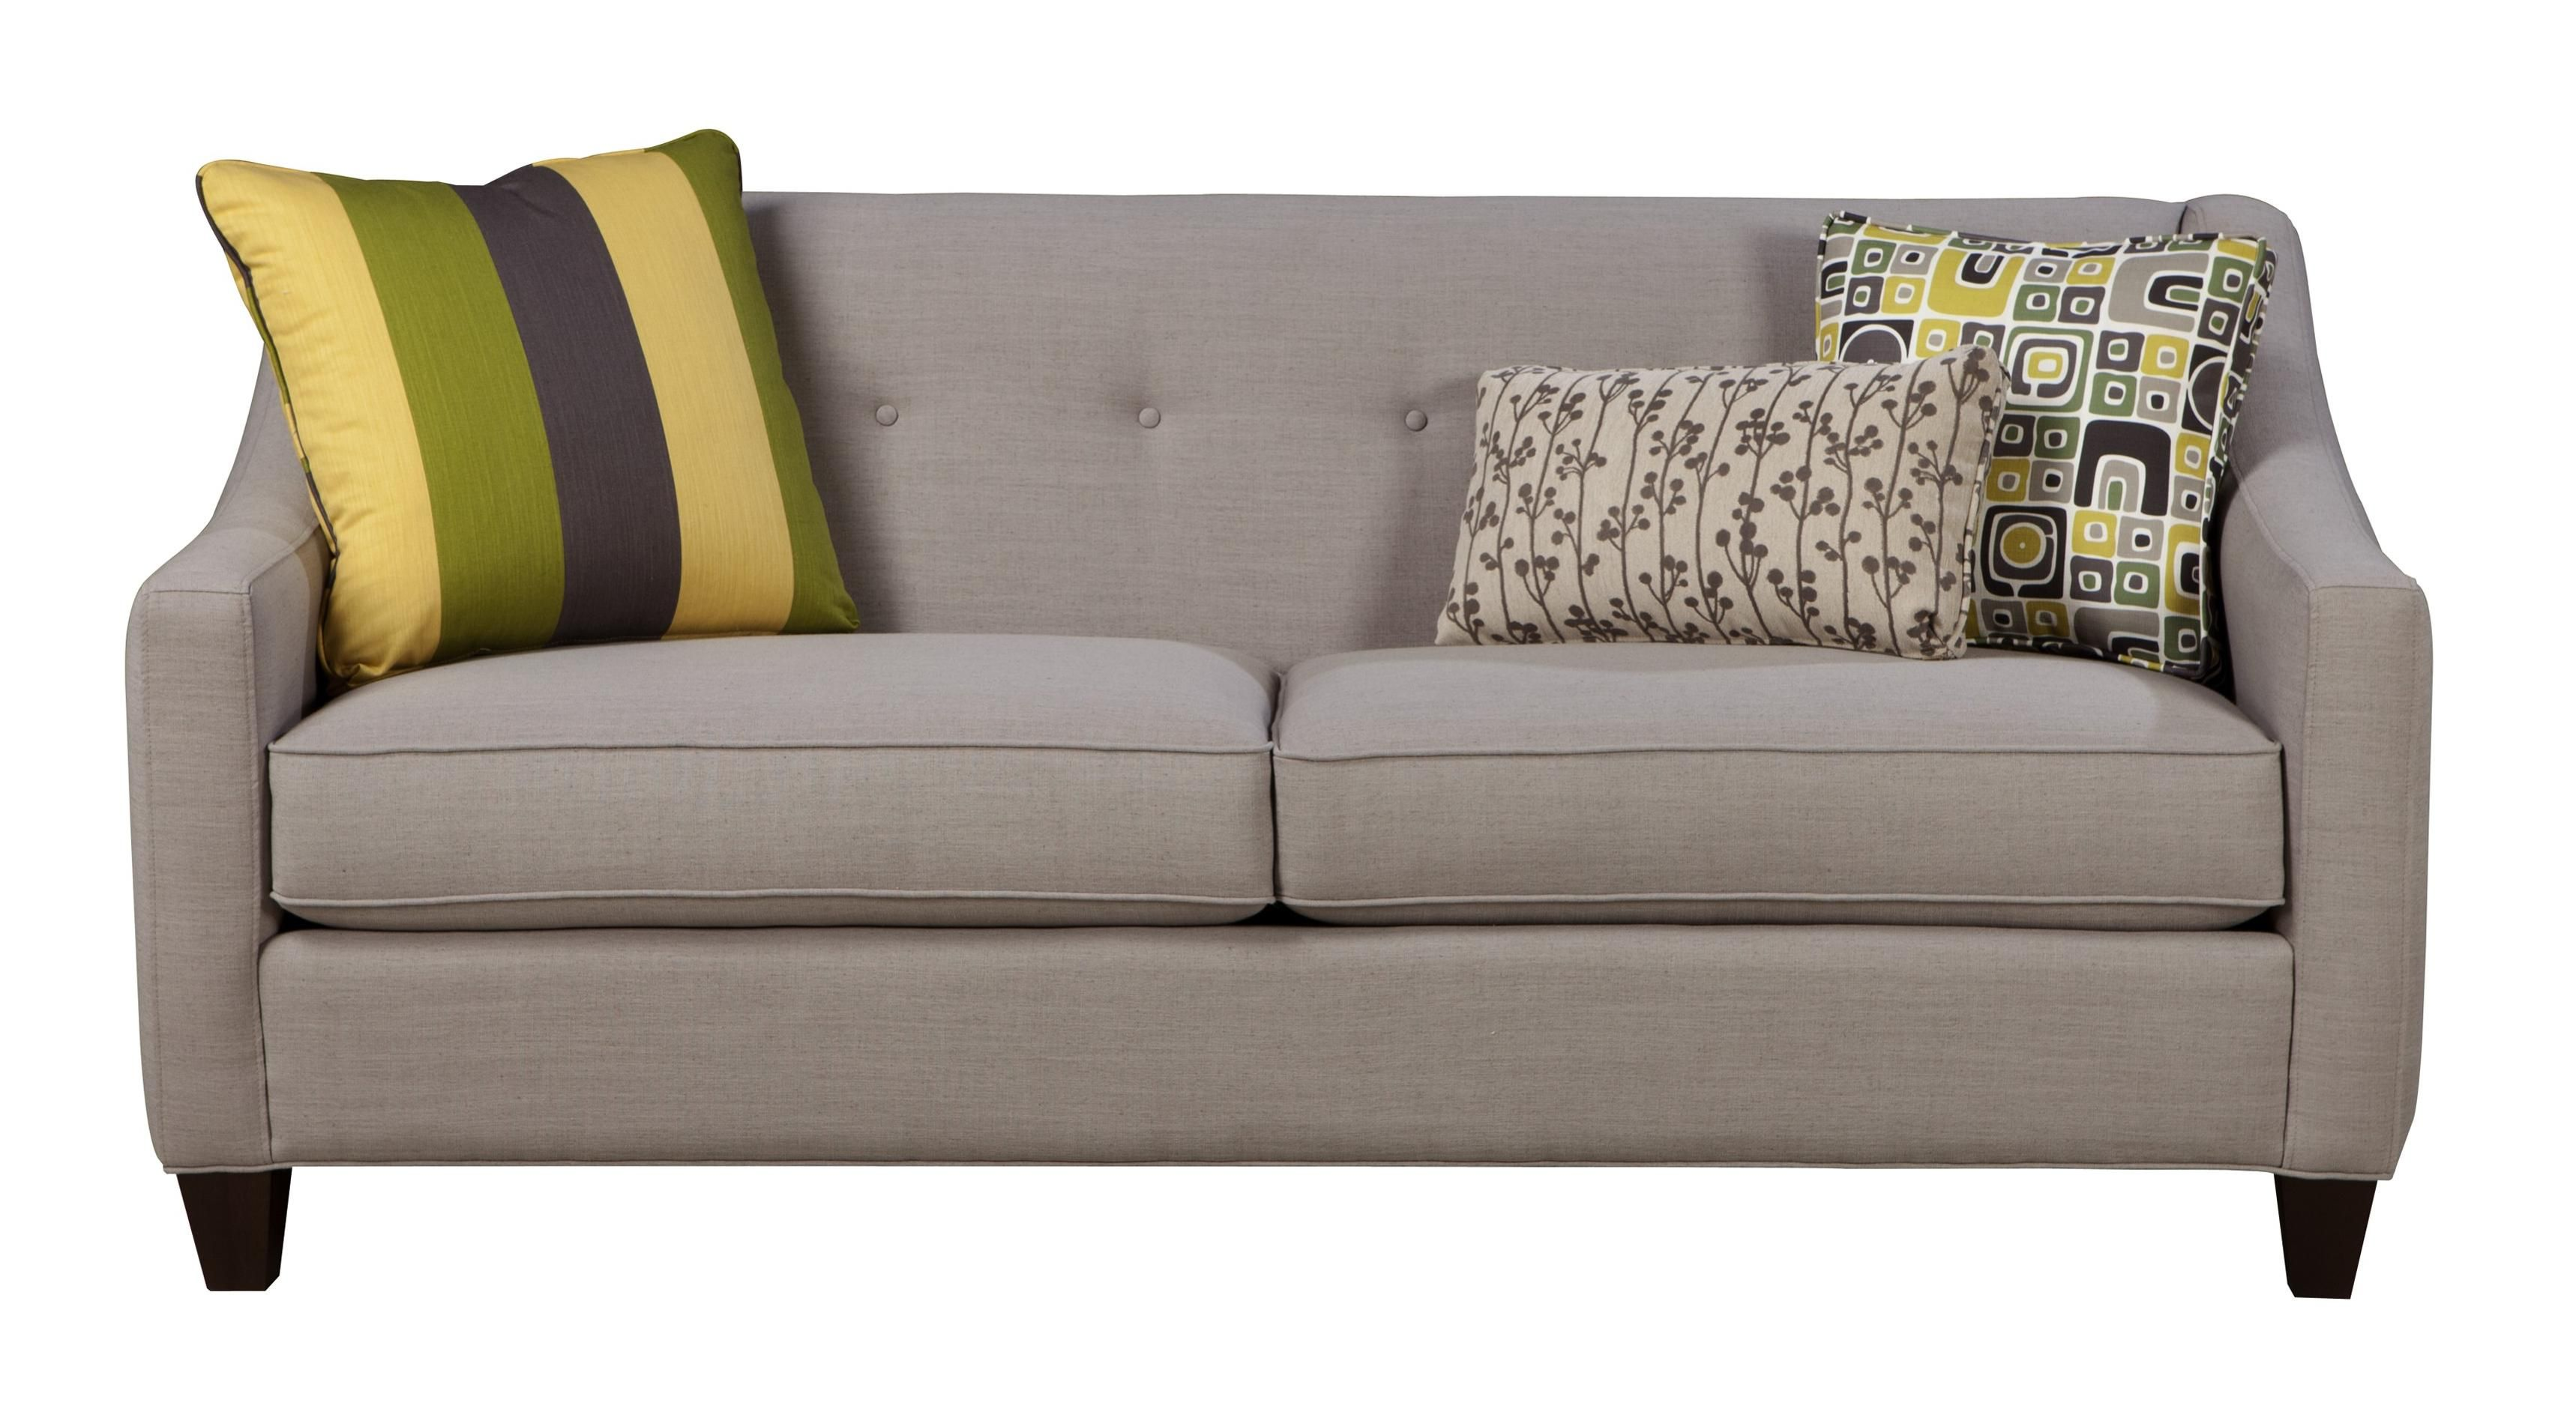 contemporary sofas and loveseats brown leather three seater sofa sleeper with button tufting memory